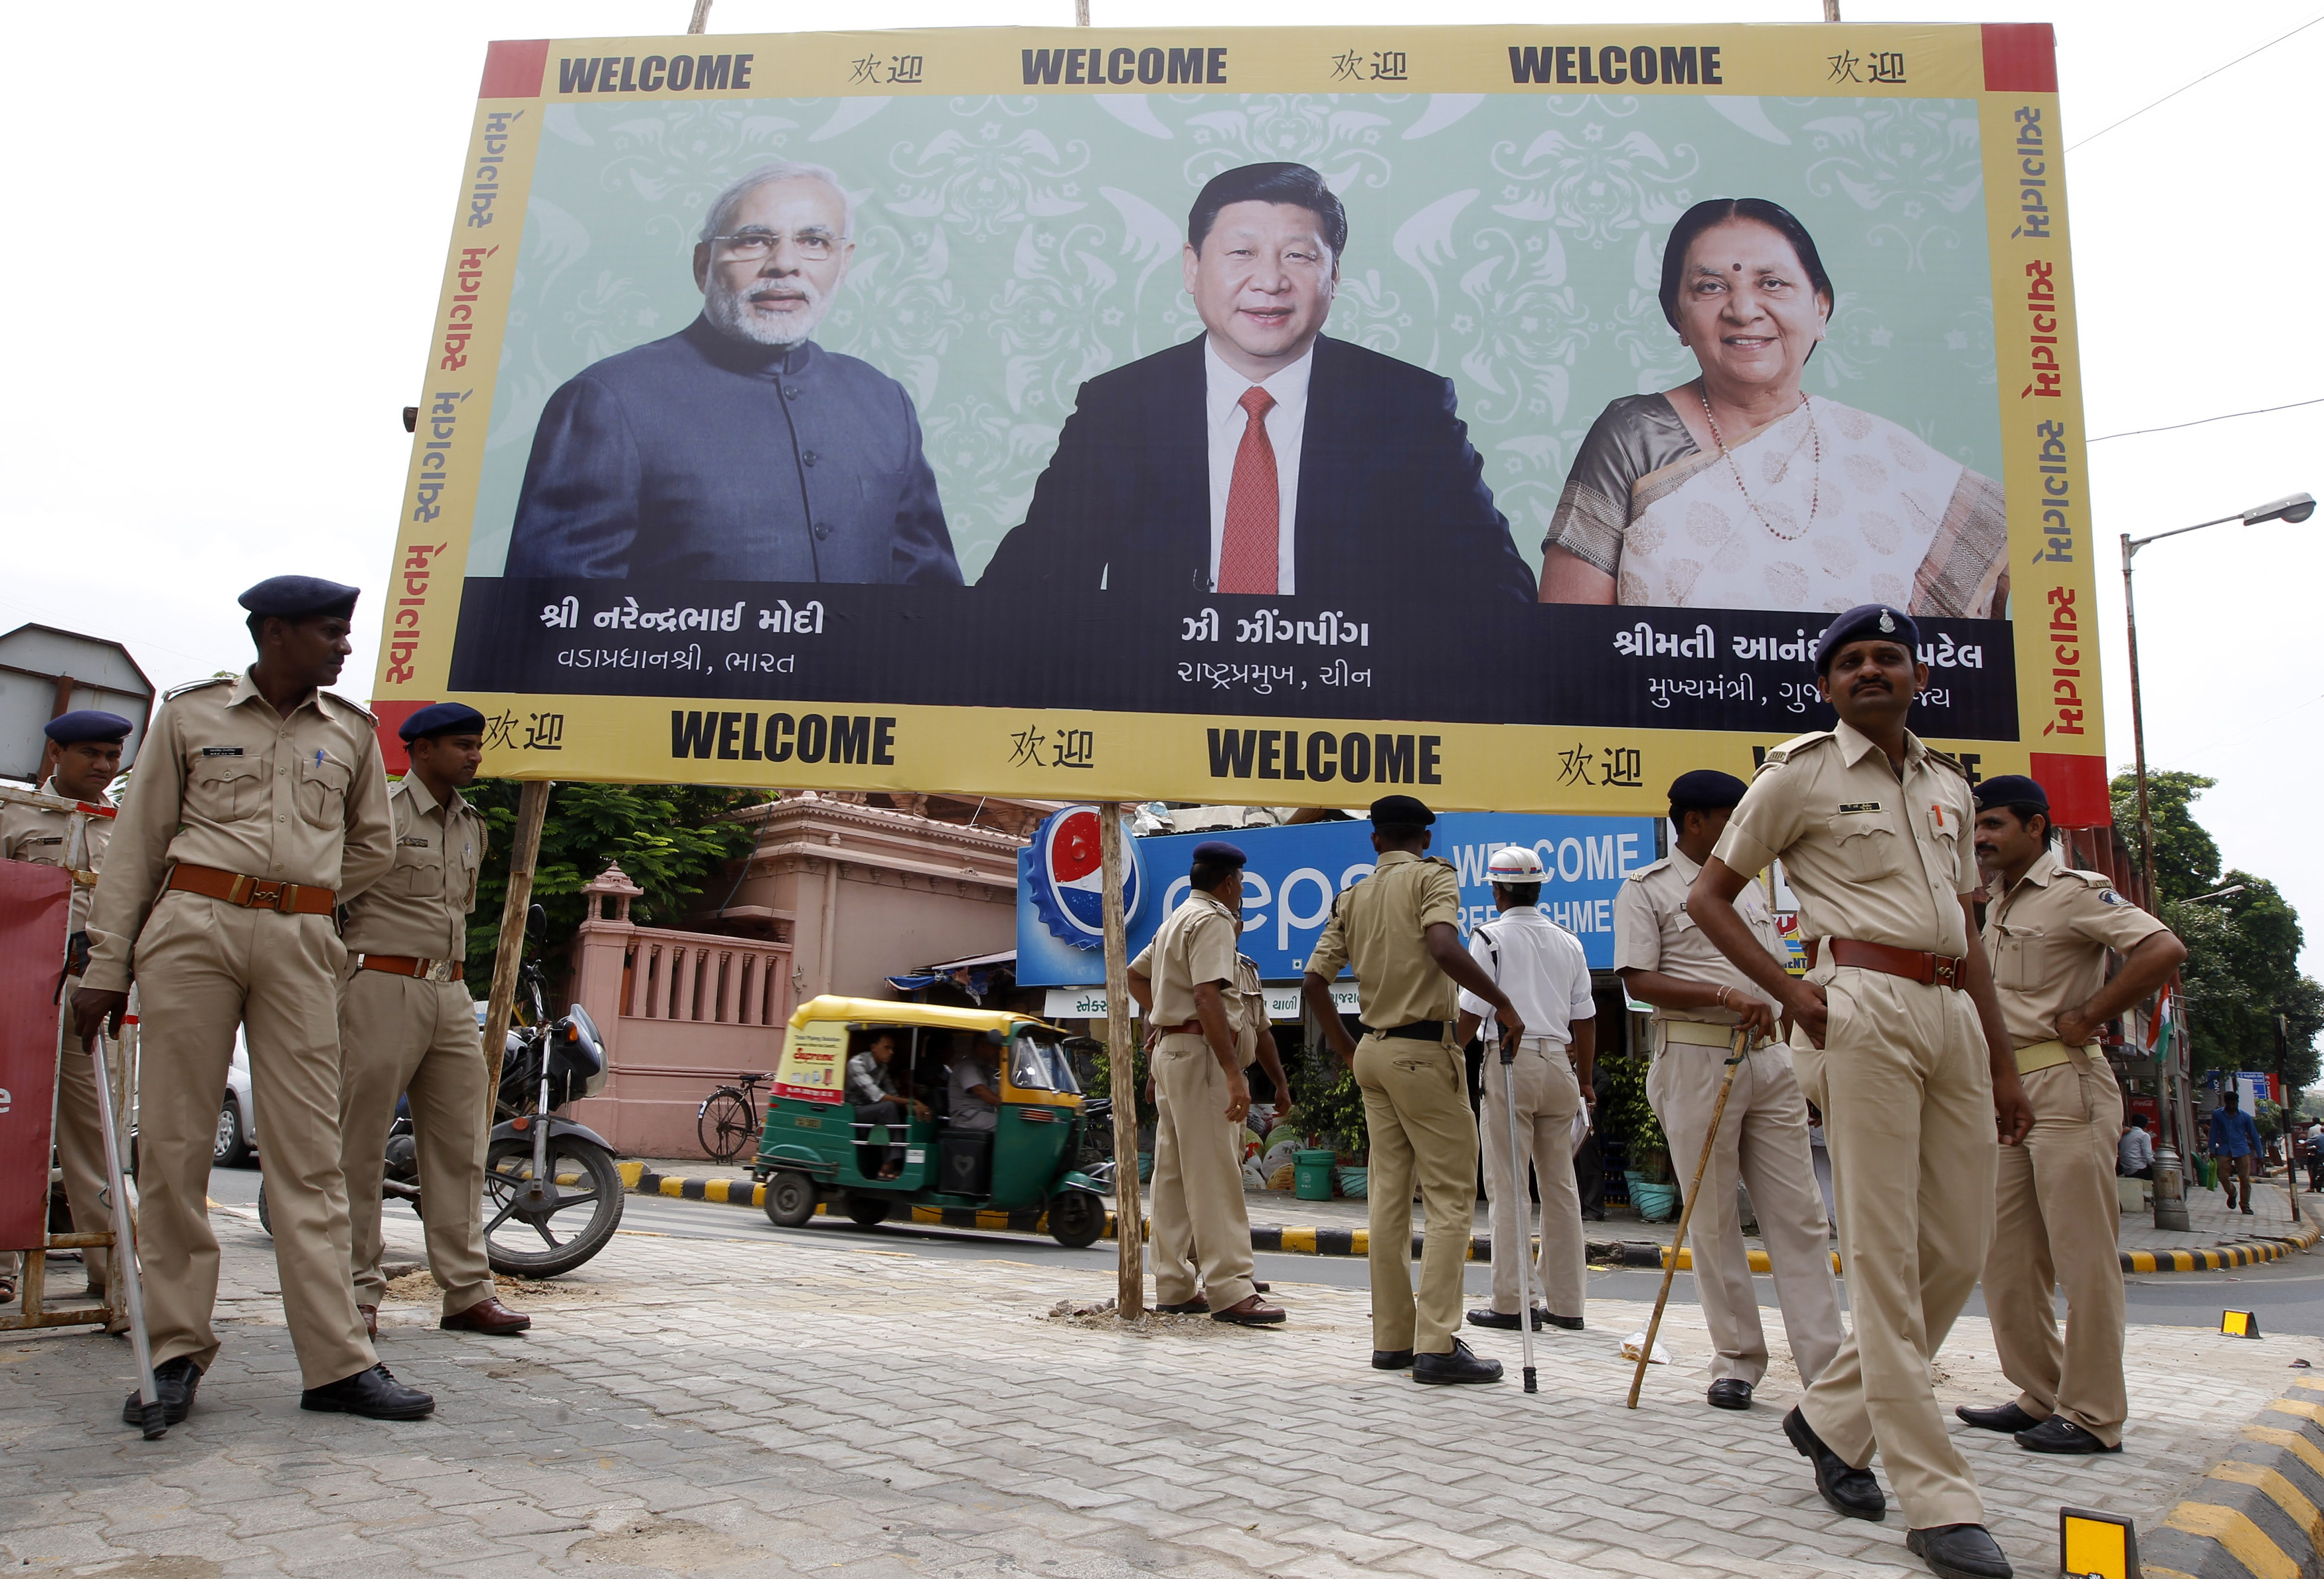 Police personnel stand guard on Sept. 16, 2014, in front of a billboard with images of, from left to right, Indian Prime Minister Narendra Modi, Chinese President Xi Jinping and Gujarat Chief Minister Anandiben Patel ahead of Xi's arrival in Ahmedabad